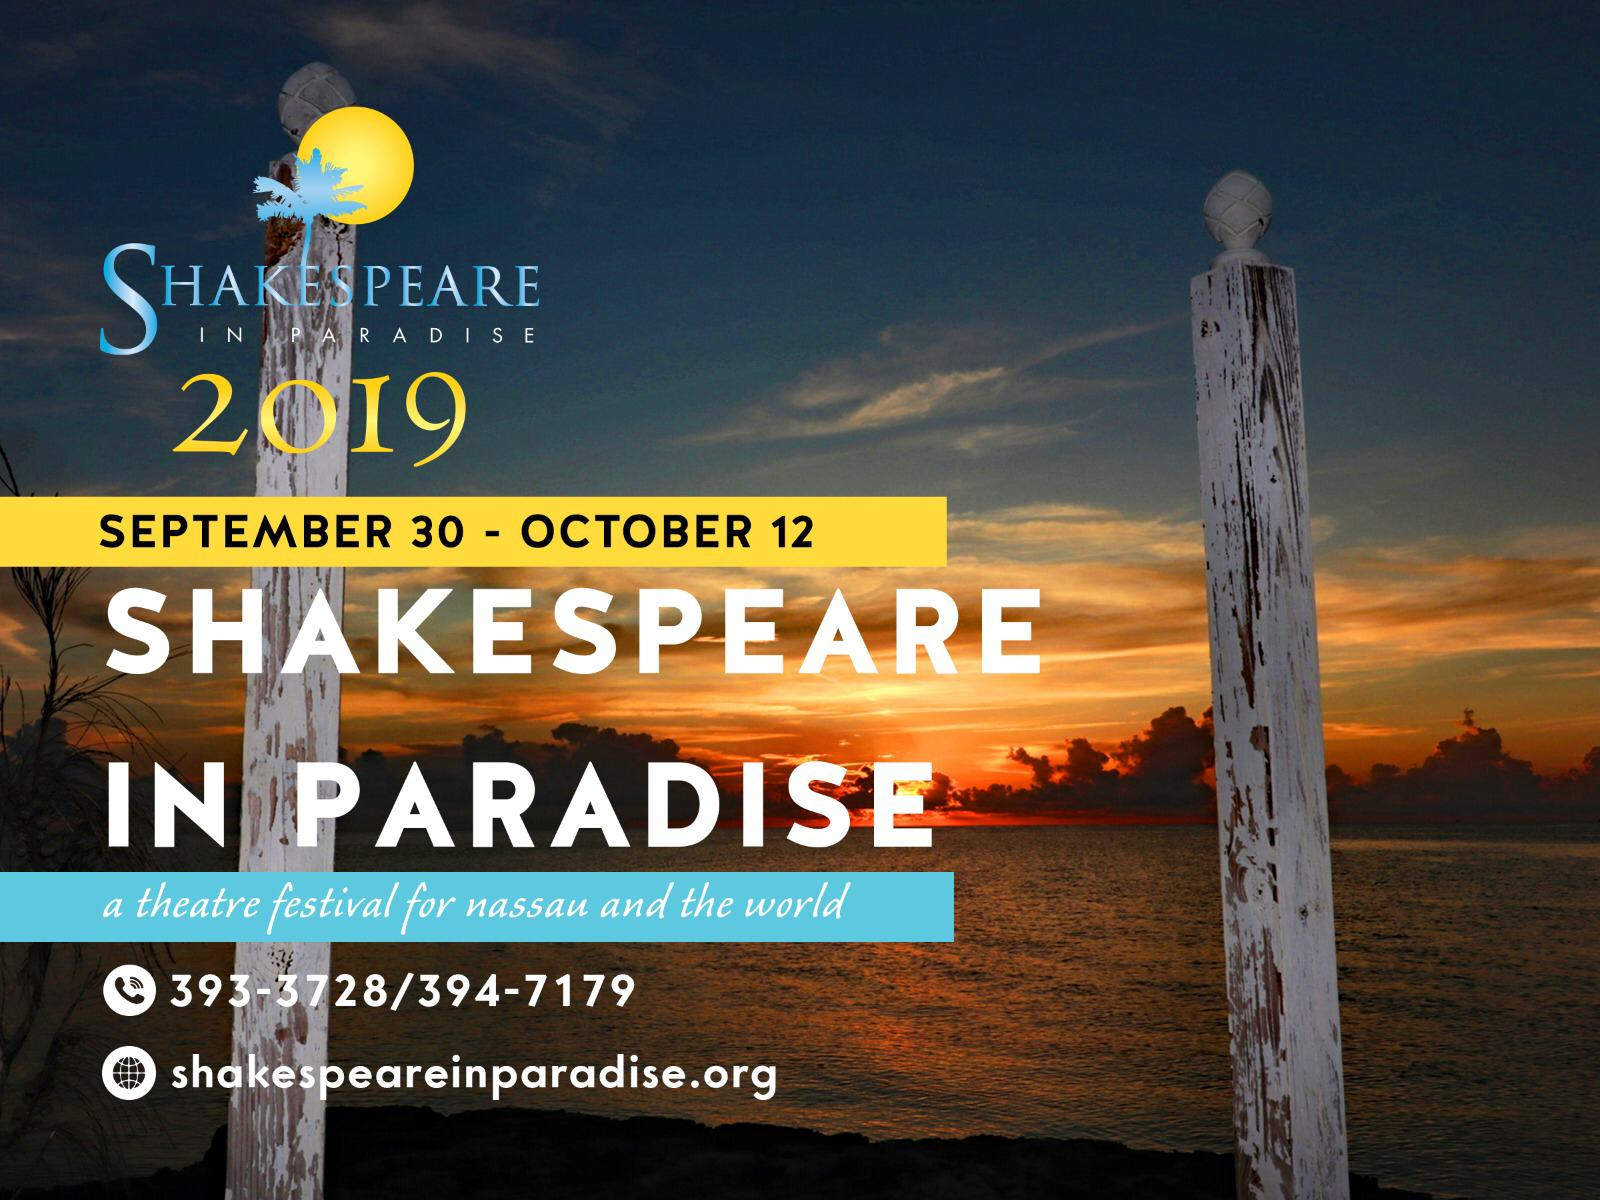 Shakespeare in Paradise